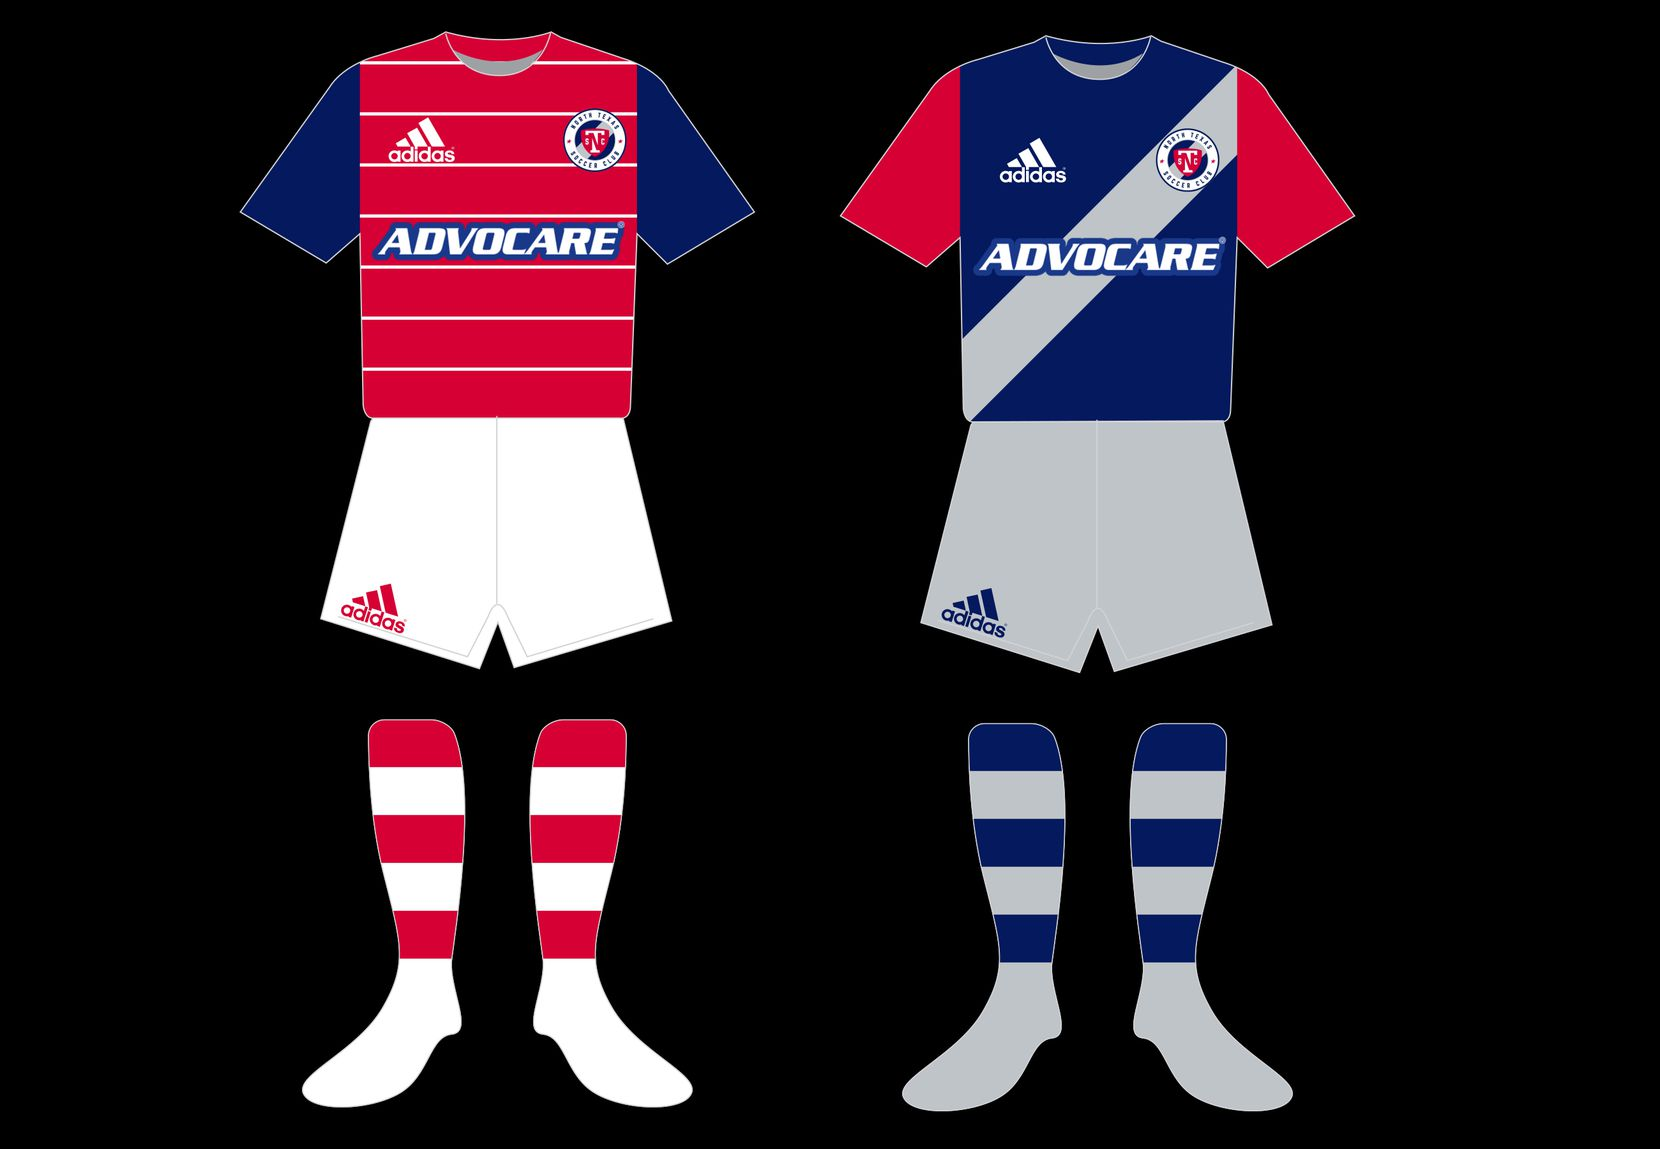 North Texas SC kit concepts by John Lenard, including a Burn throwback primary and a badge inspired sash secondary.